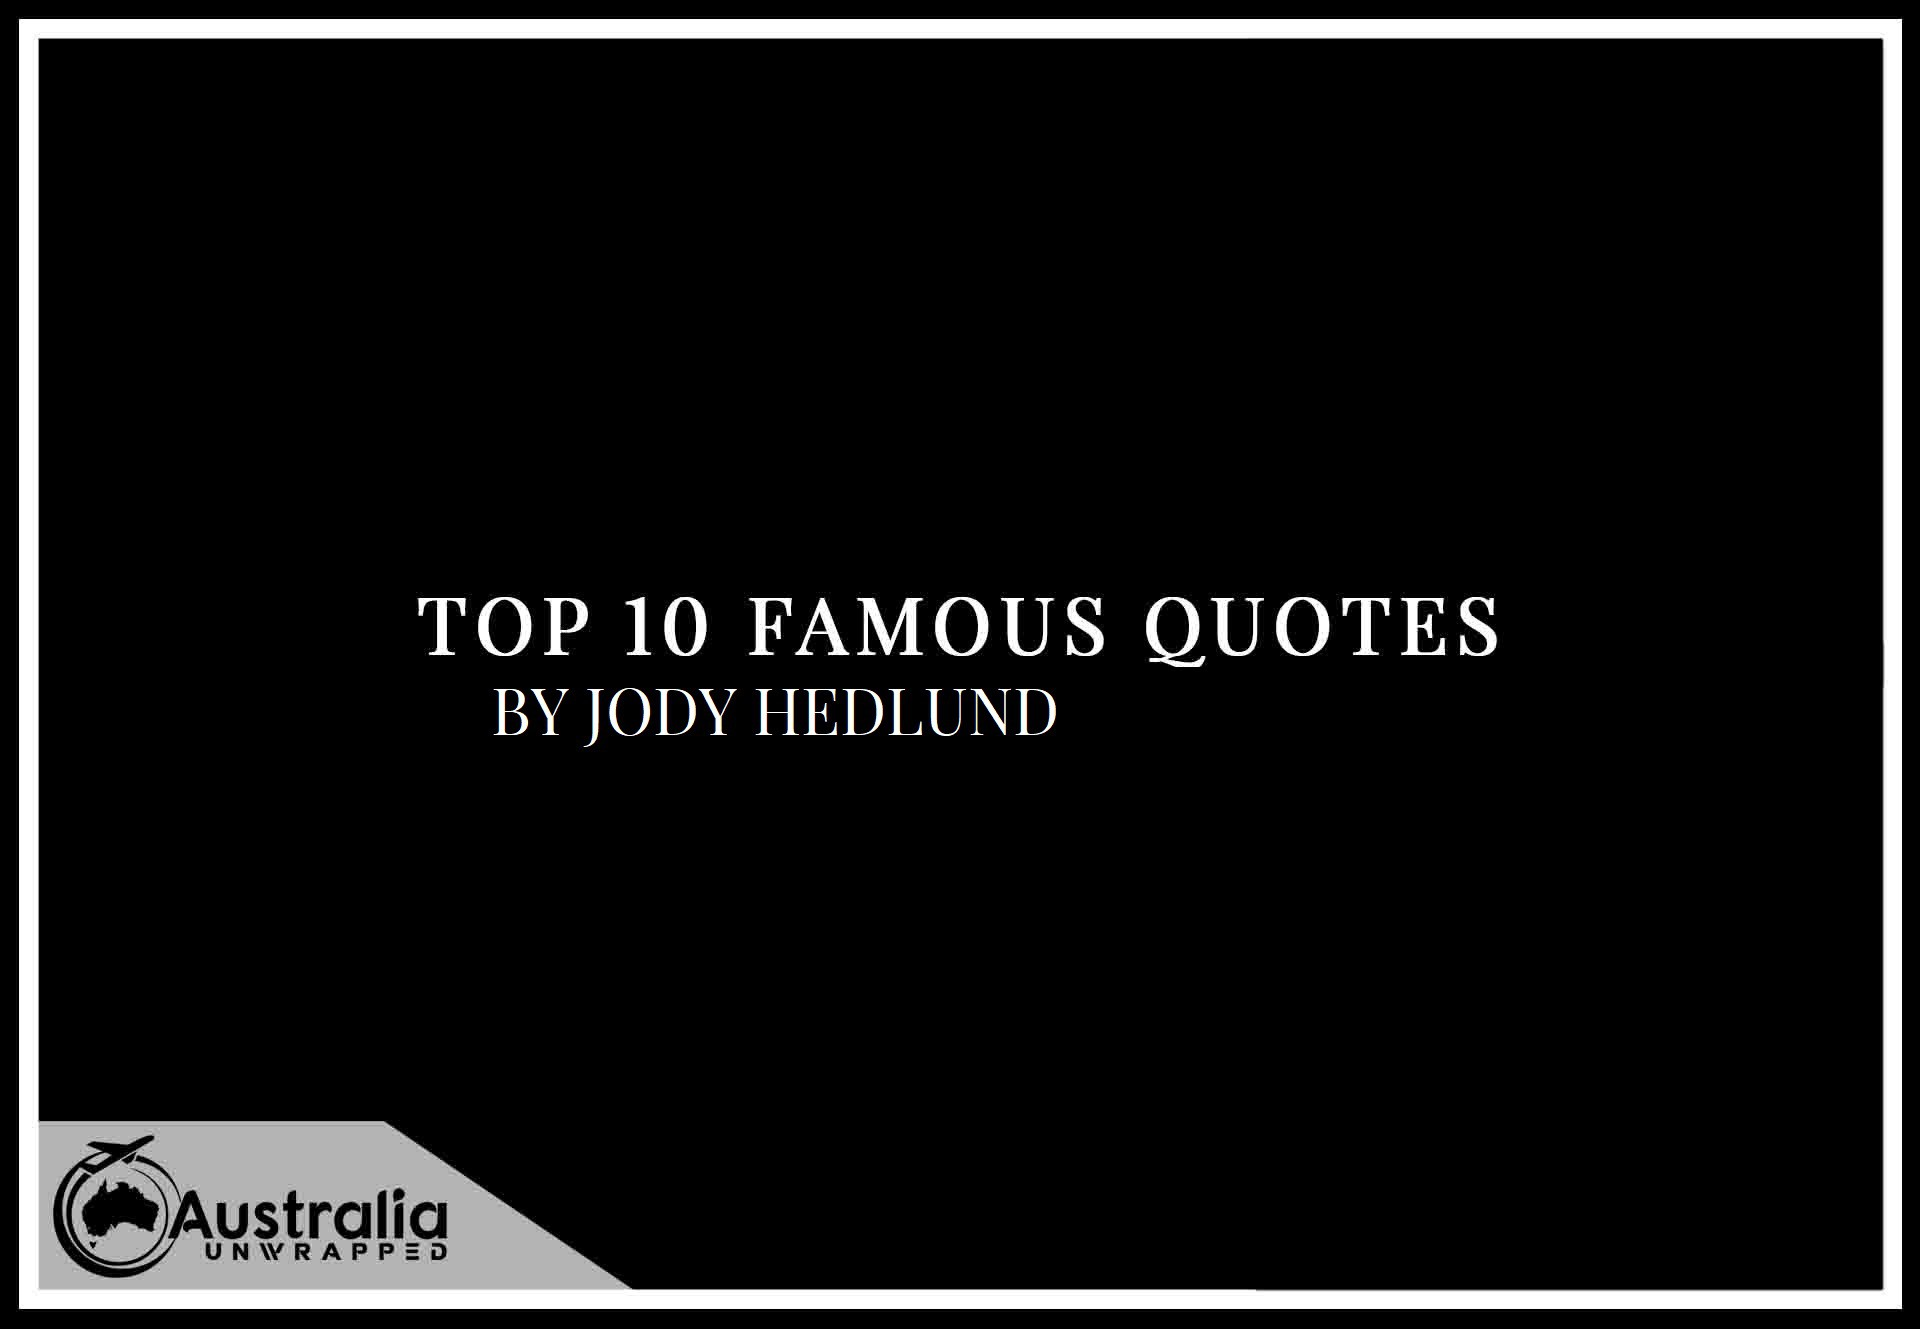 Top 10 Famous Quotes by Author Jody Hedlund